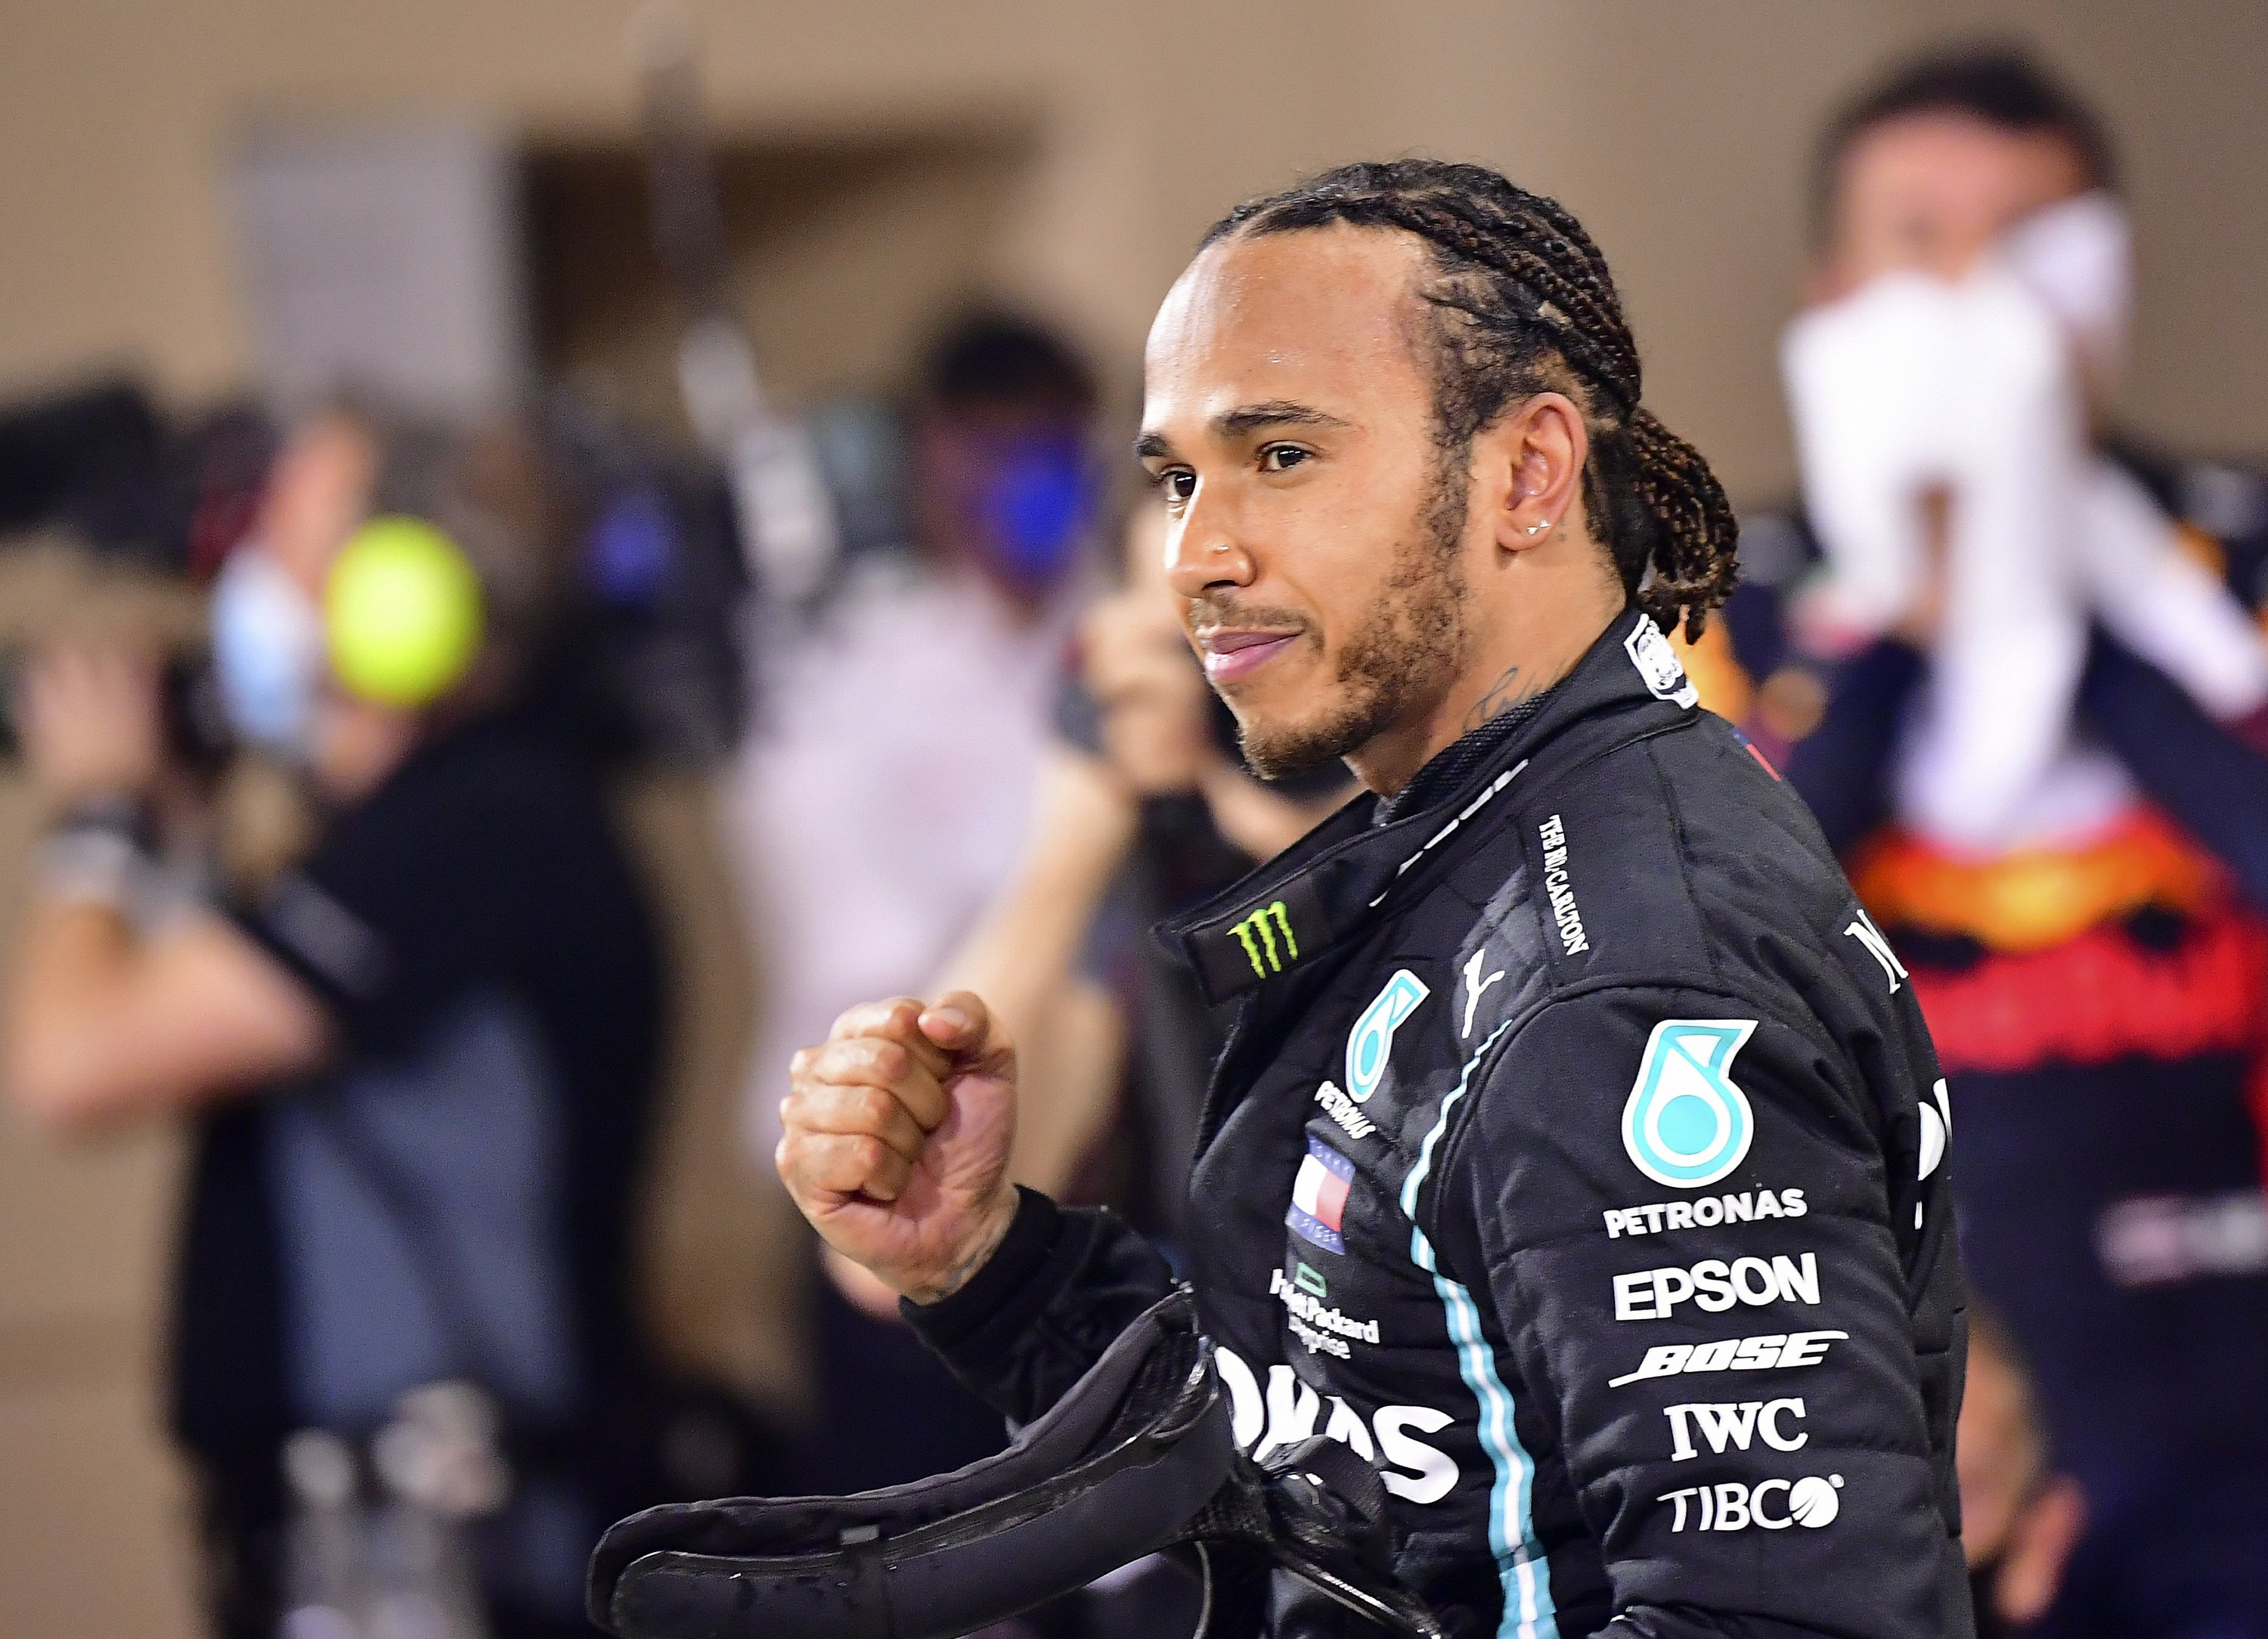 Speedy Sir Lewis Hamilton Knighted In Year End Royal Honors